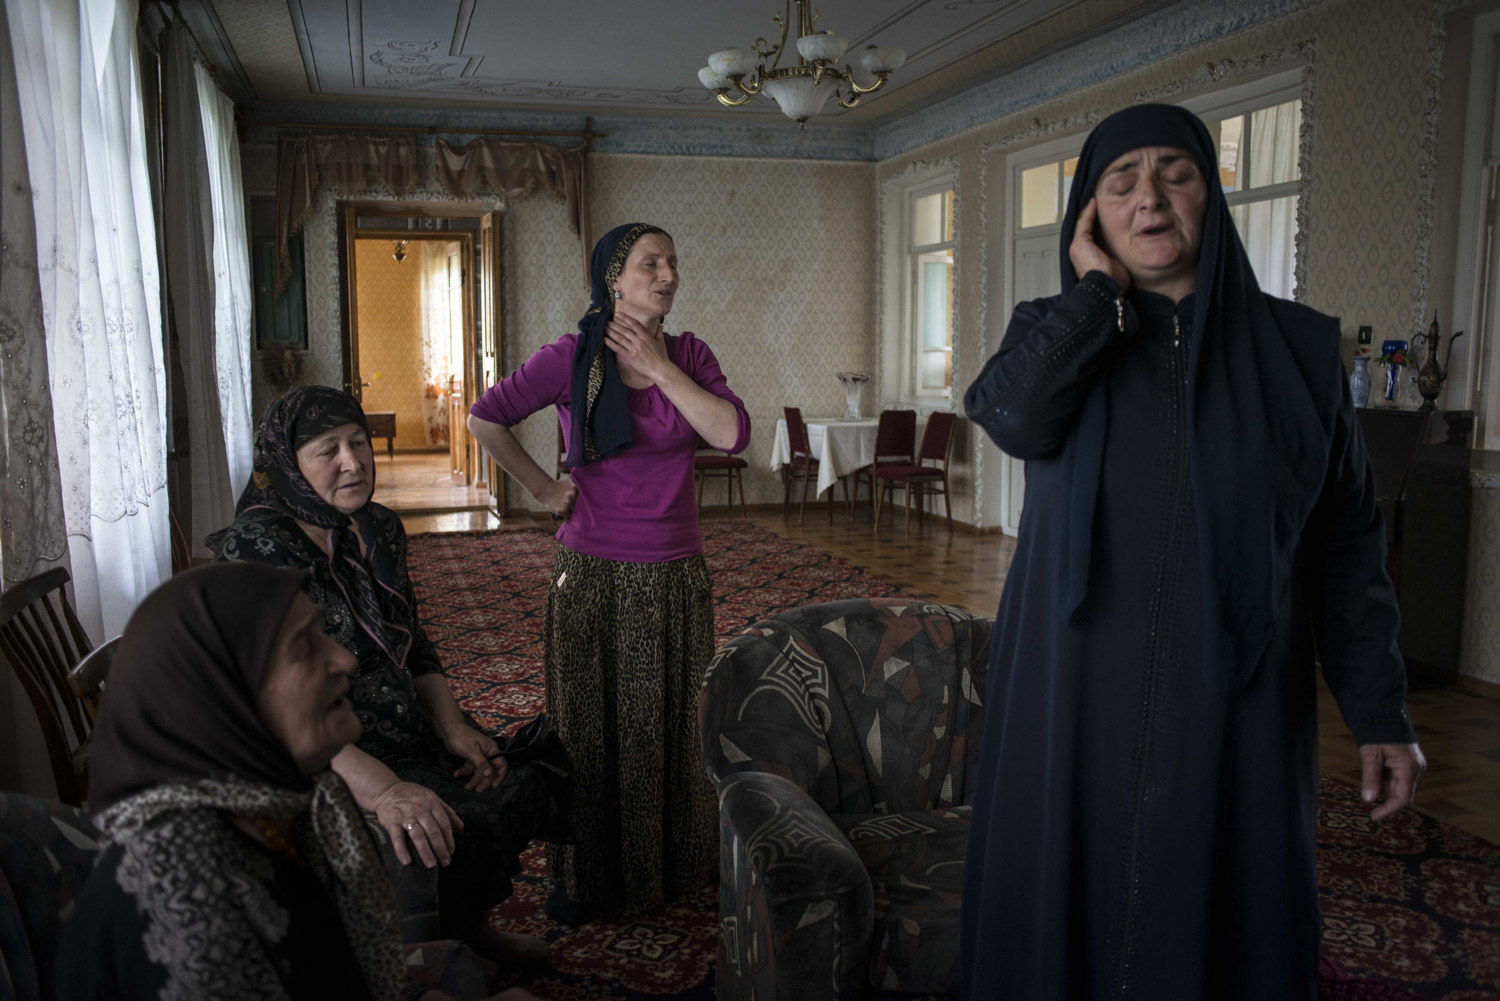 In a Georgian valley with a reputation for arms smugglers and aspiring terrorists, a group of women keep the Sufi musical tradition alive.